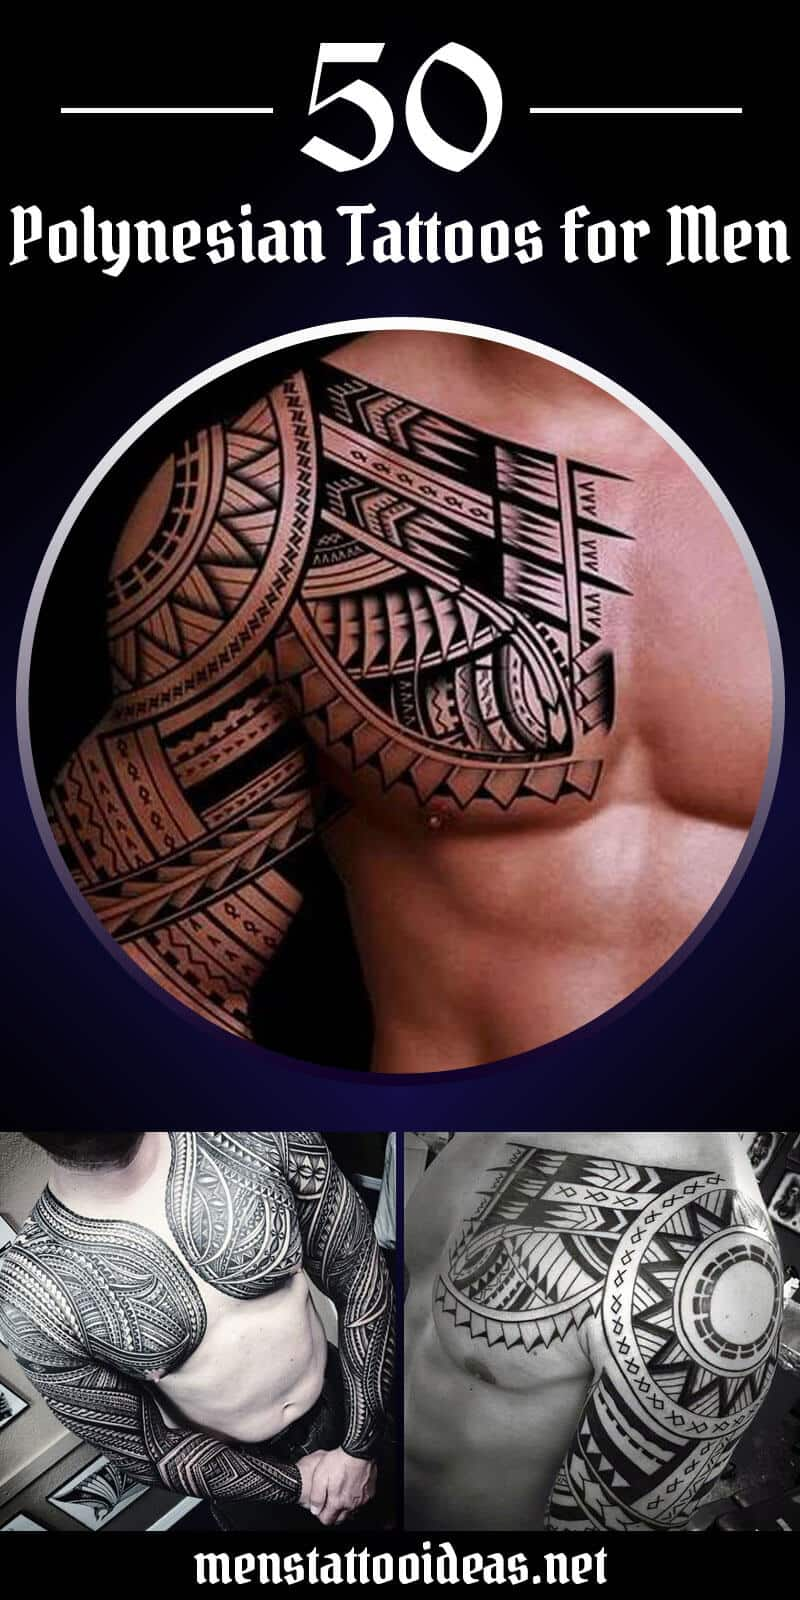 168ad6ded47 Polynesian Tattoos for Men - Ideas and Designs for Guys